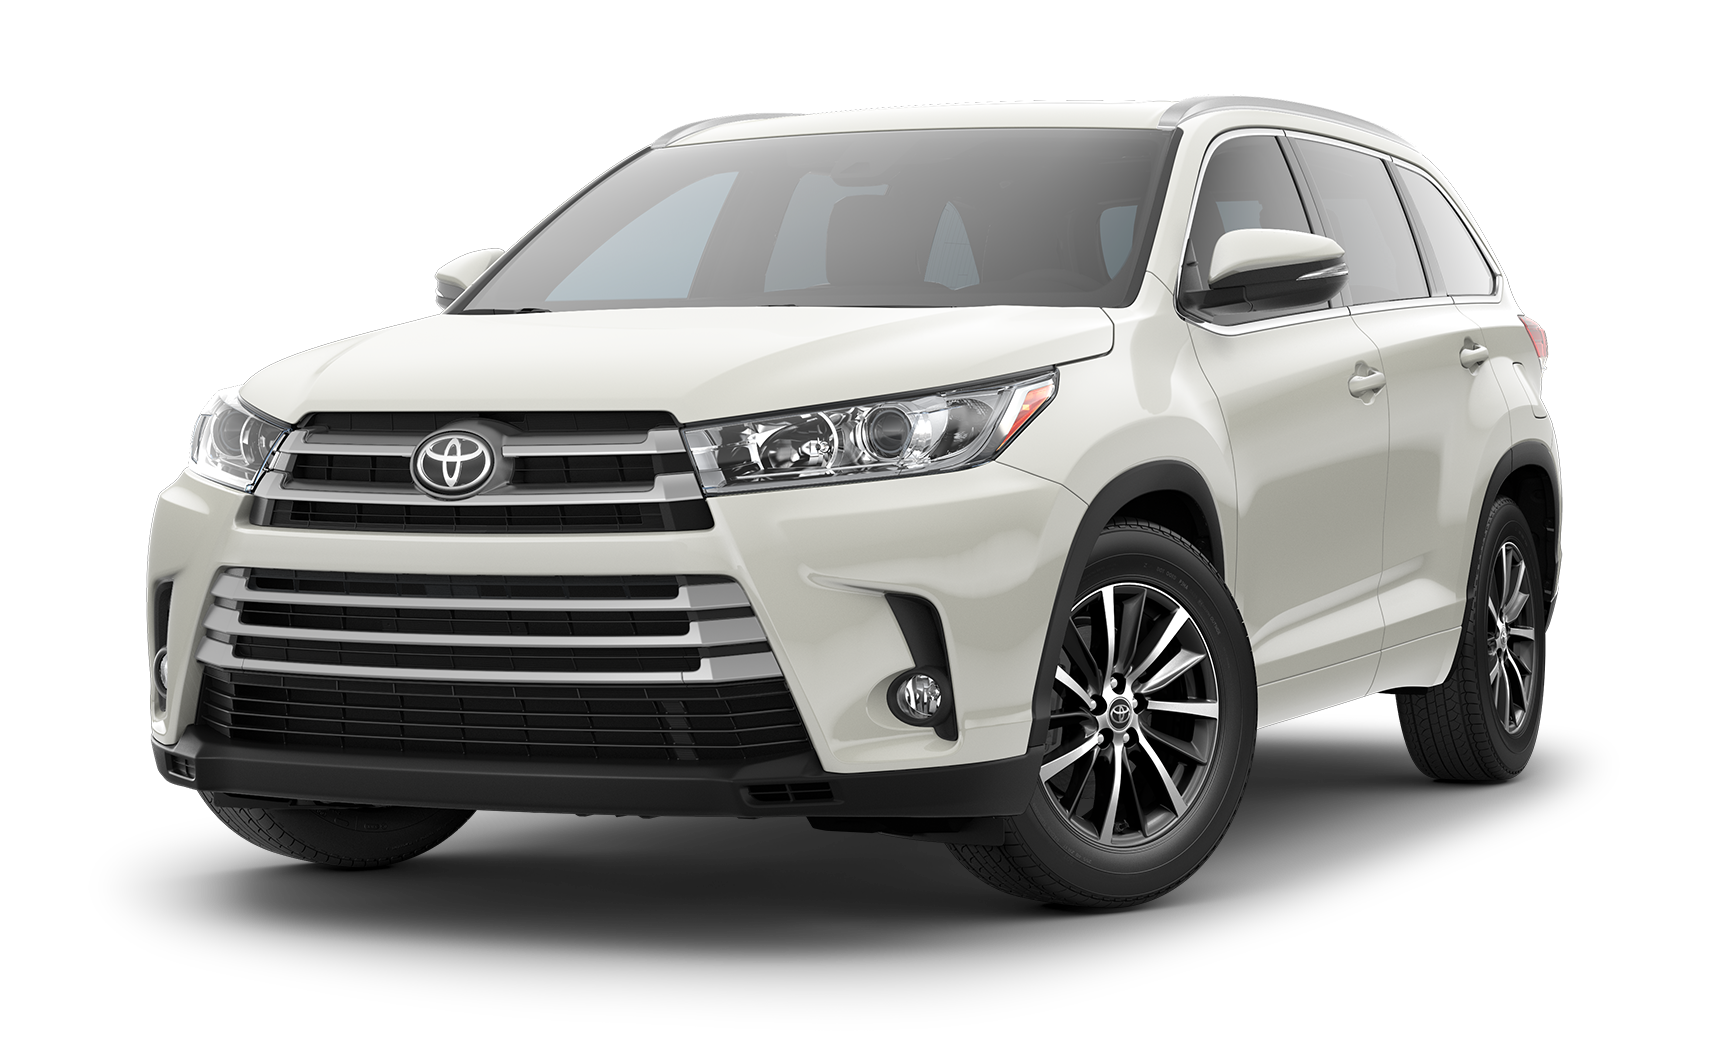 Toyota Highlander Lease Deals Pa Lamoureph Blog